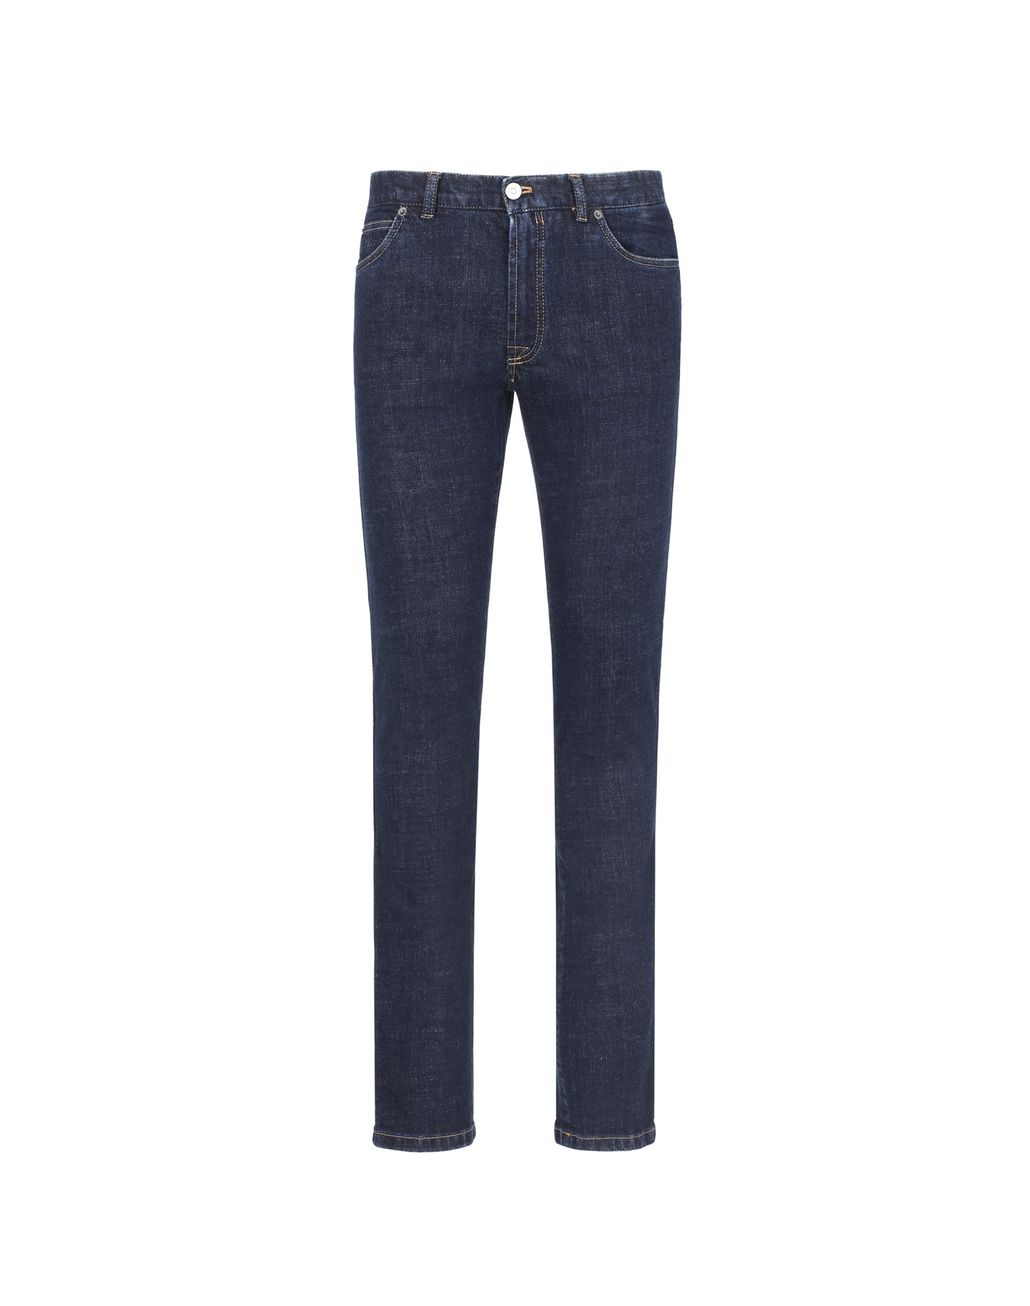 BRIONI  Blue Regular Fit Jeans Denim Man f